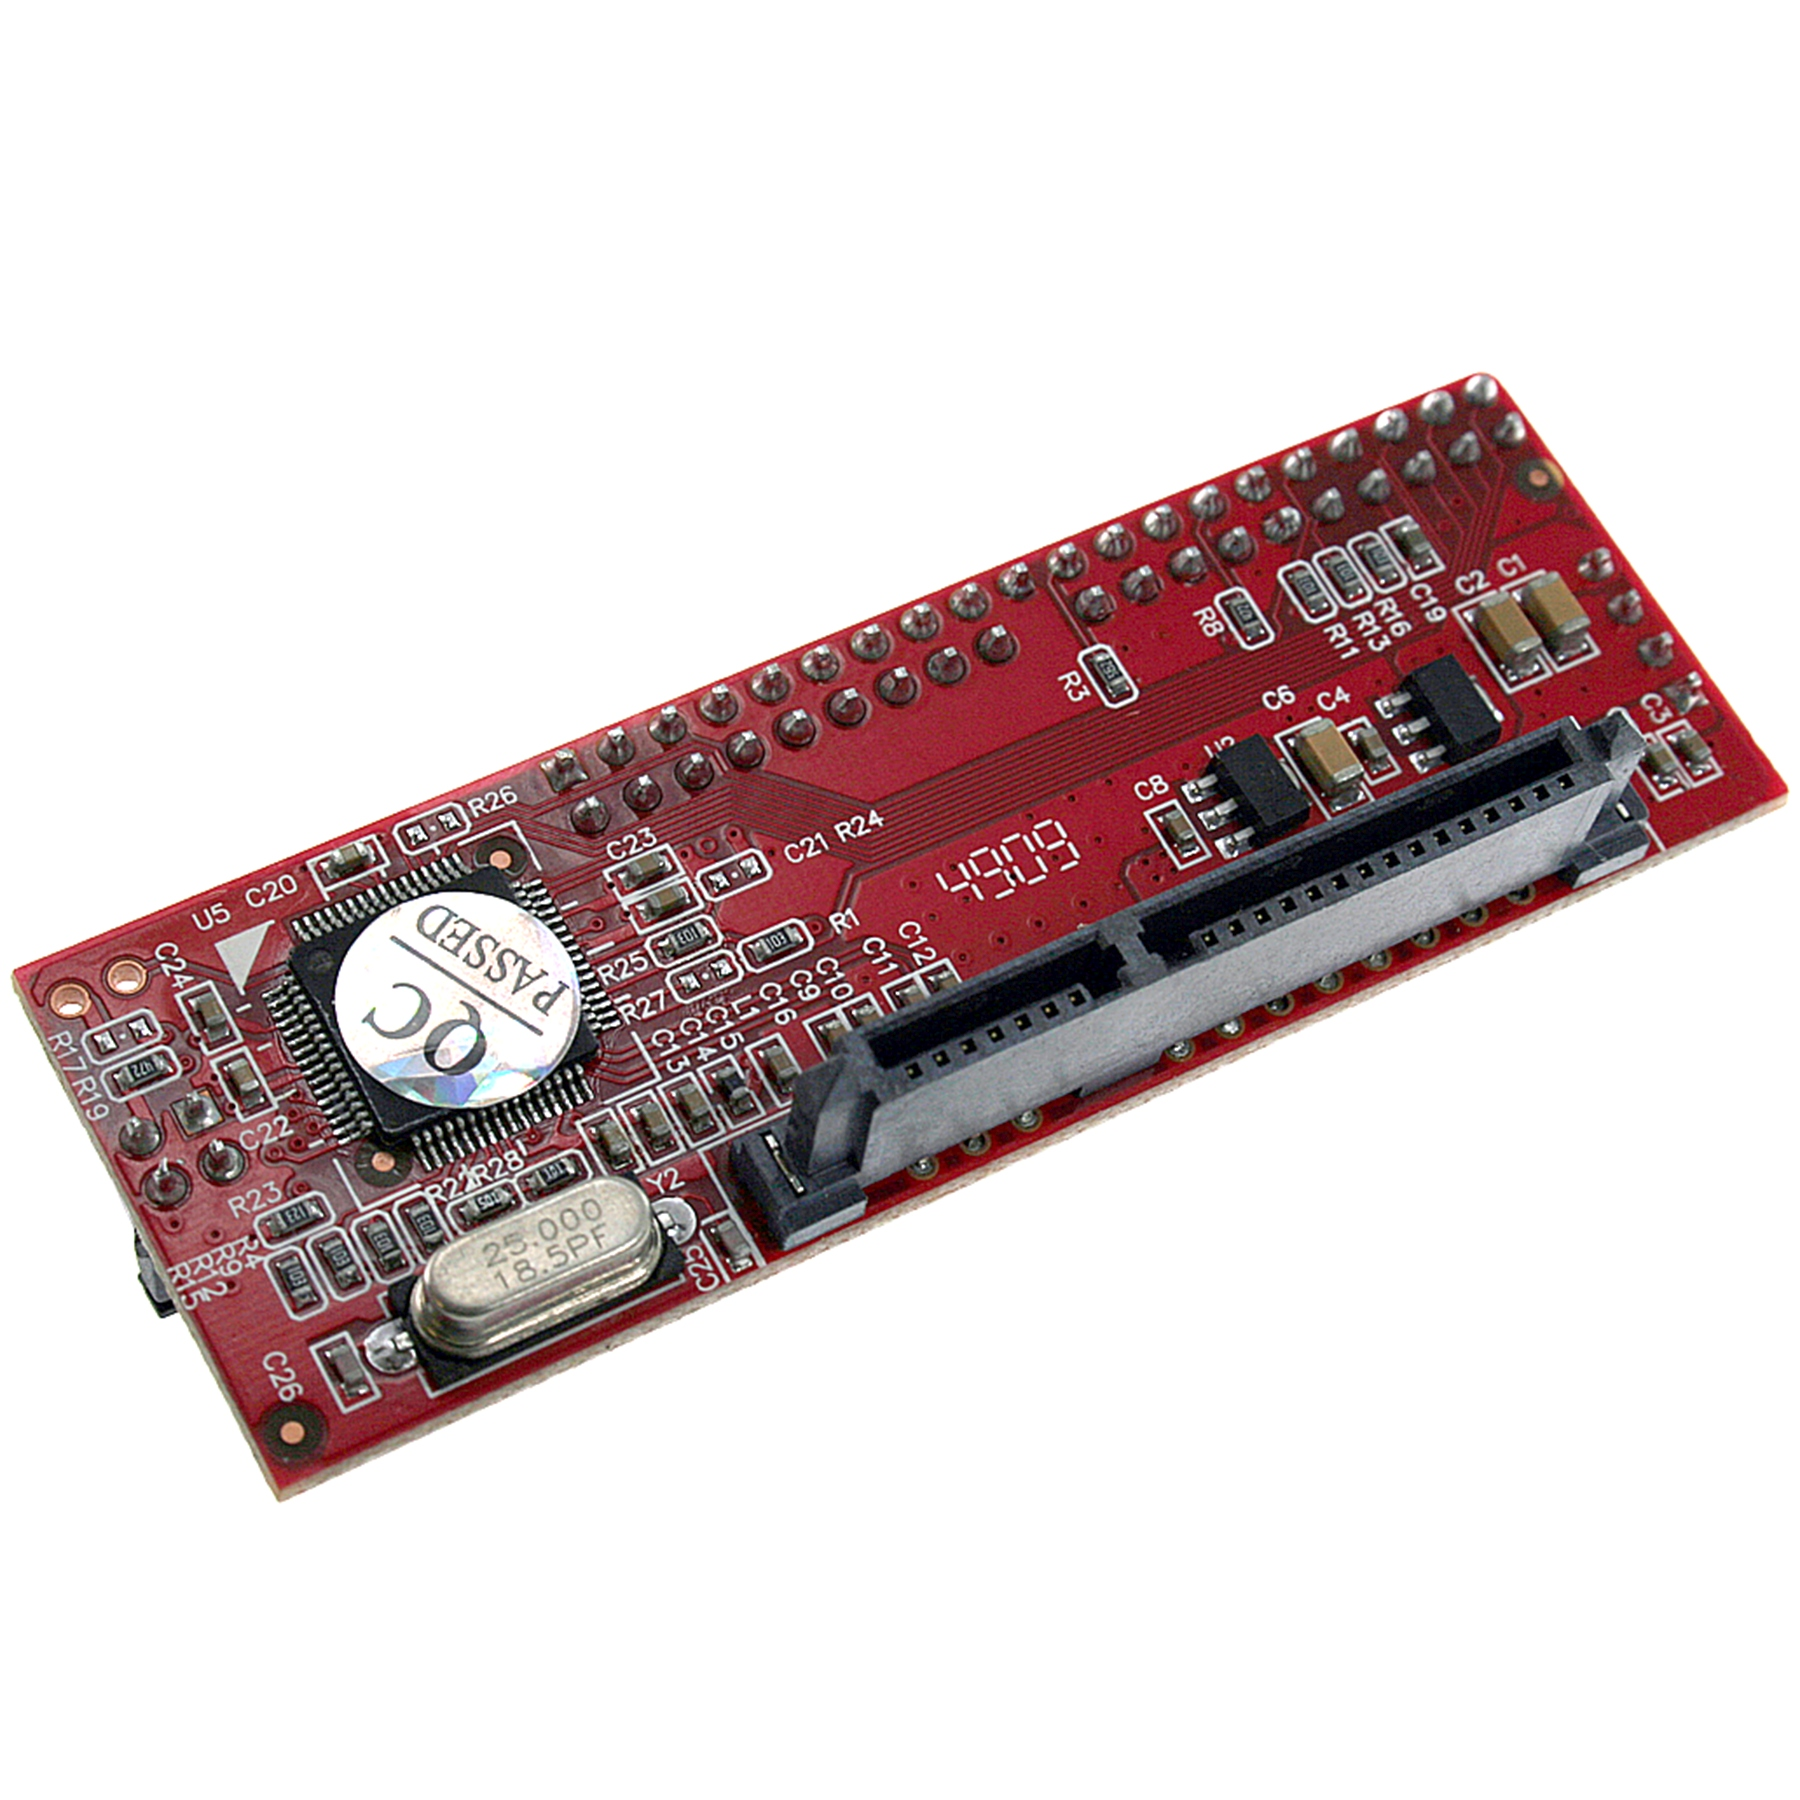 SATA HDD to IDE Adapter Board